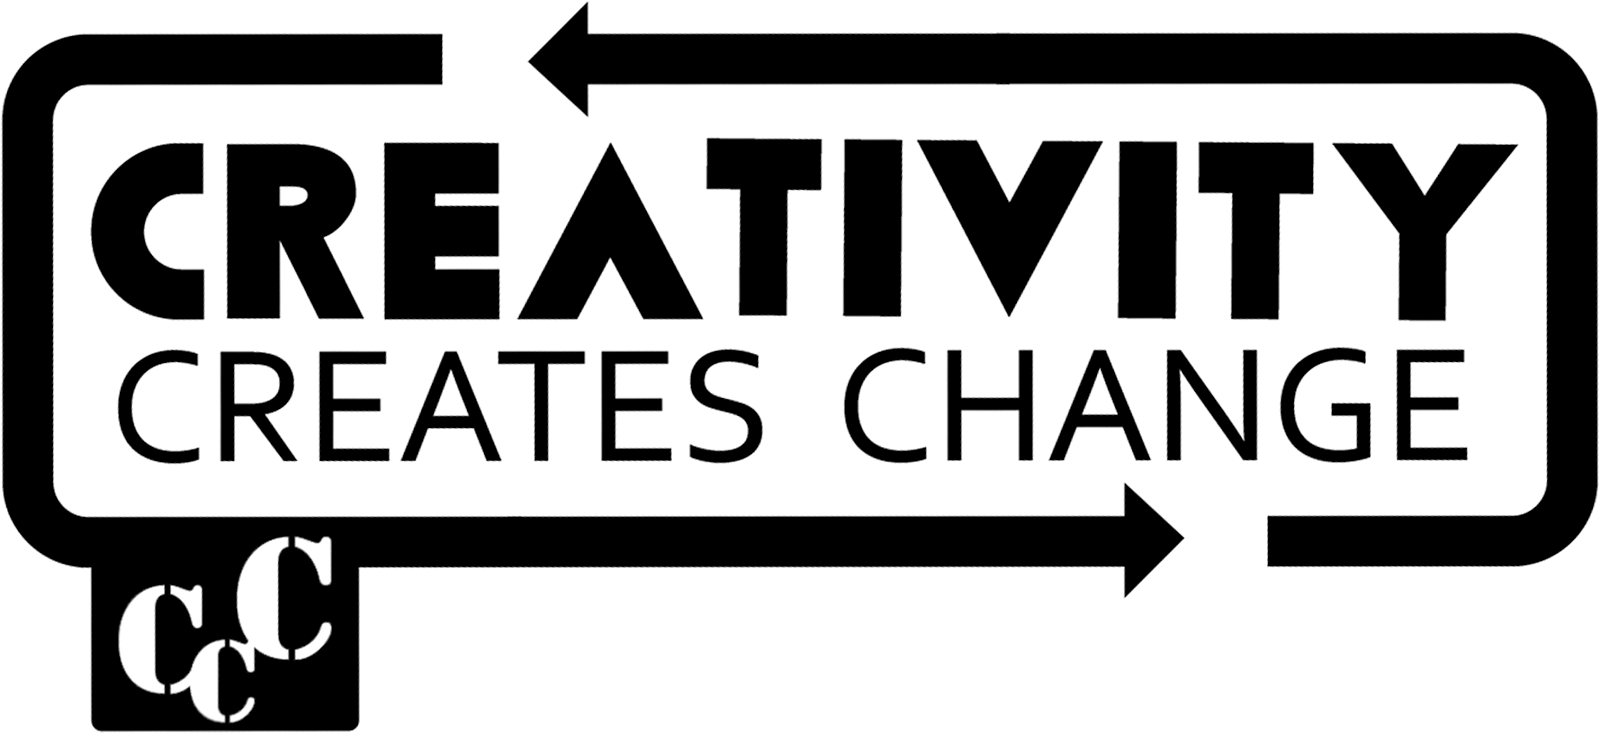 CREATIVITY CREATES CHANGE